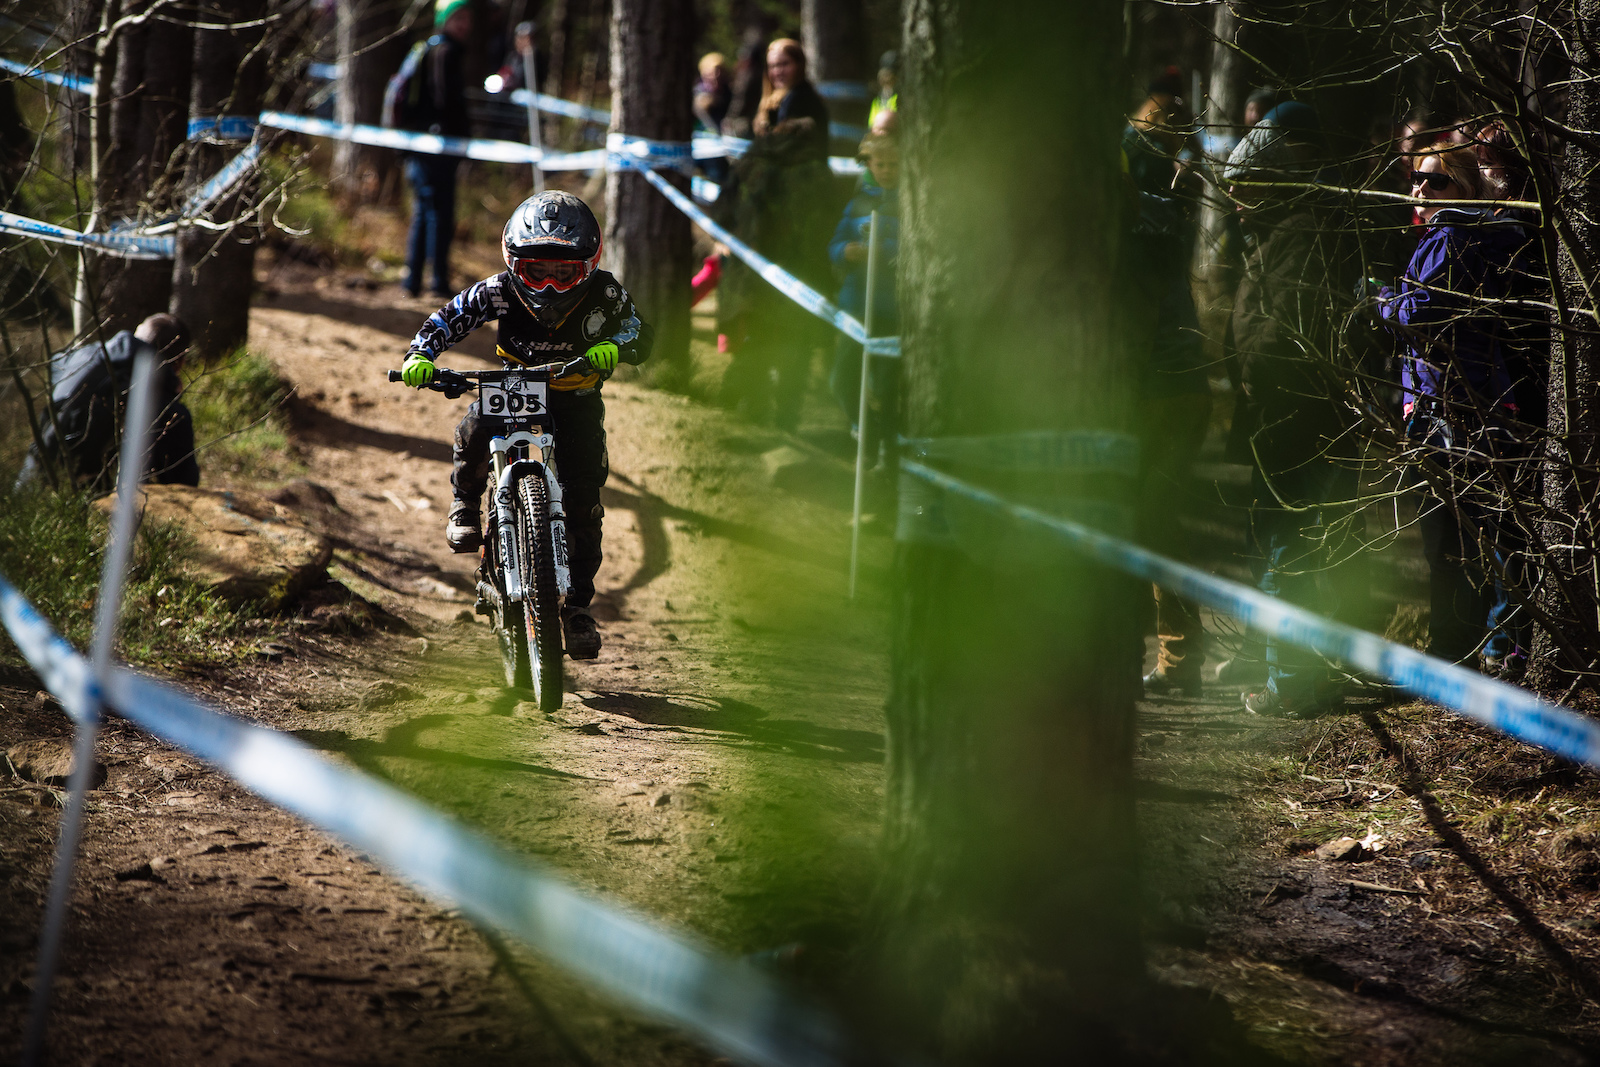 10-12 boys - 2nd place rider Kenzie Nevard. The diversity of entrants was astounding. Riders spanning at least three generations came to compete at all levels in Grenoside.